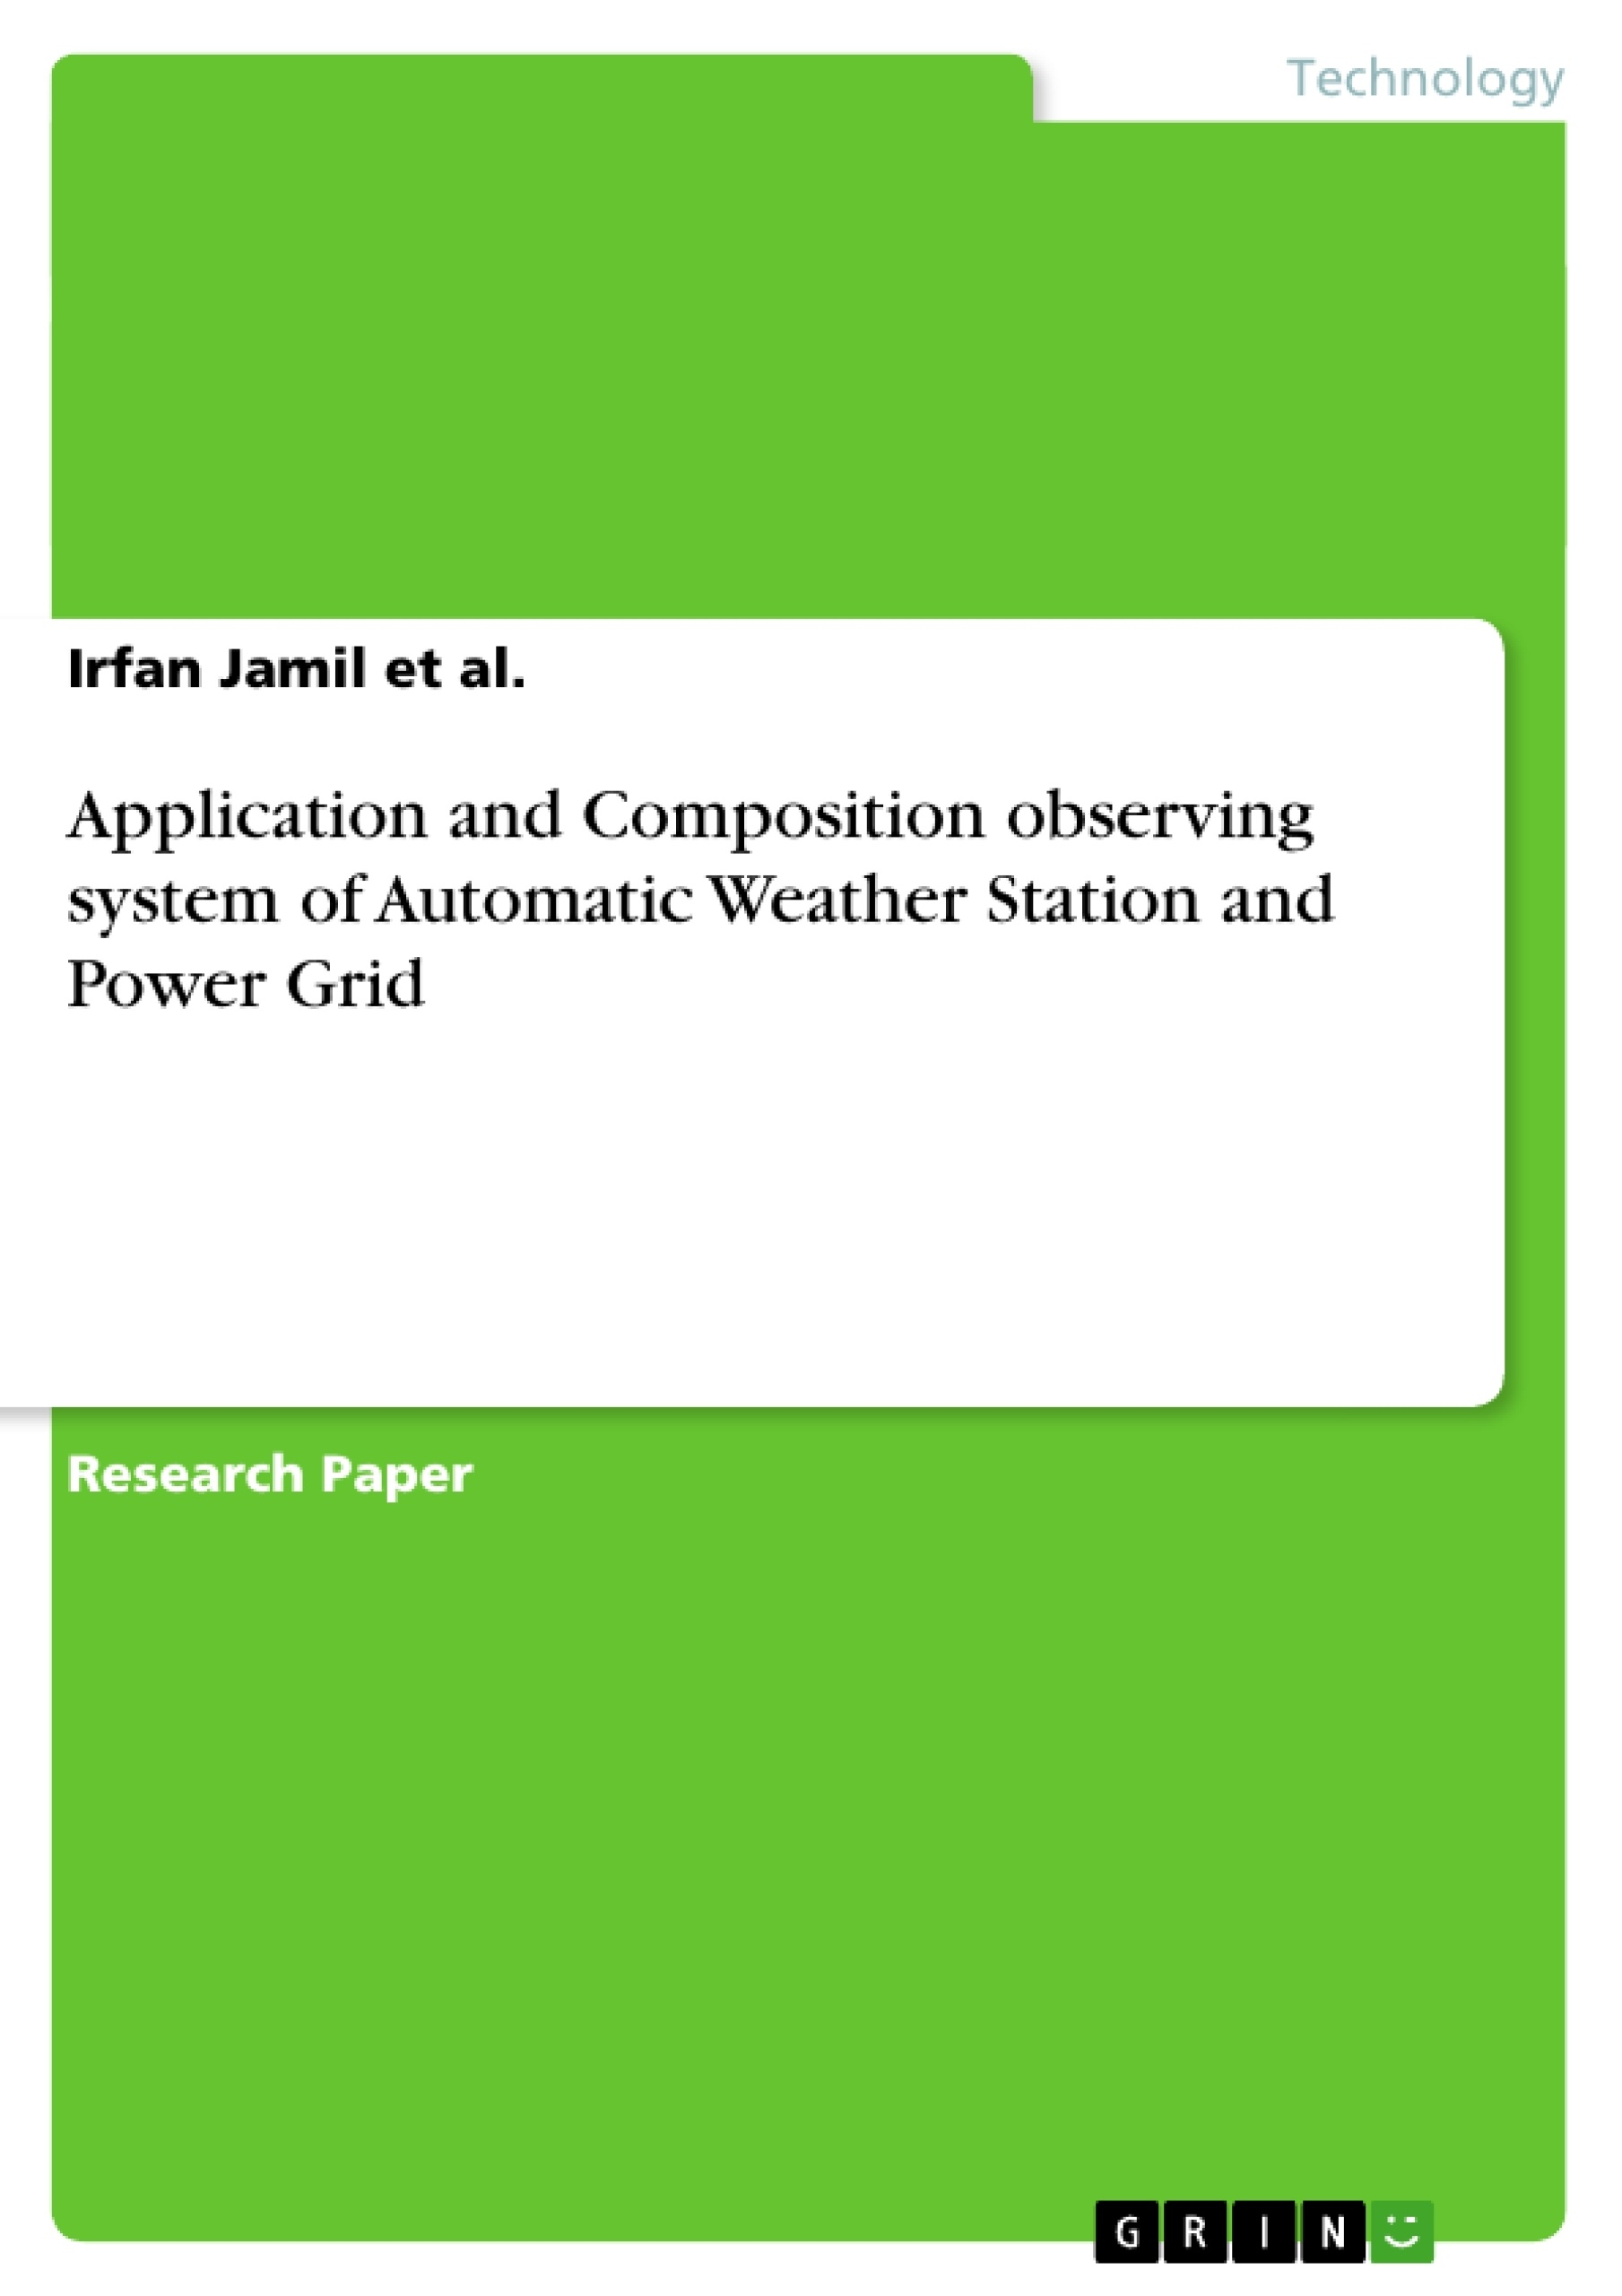 Title: Application and Composition observing system of Automatic Weather Station and Power Grid